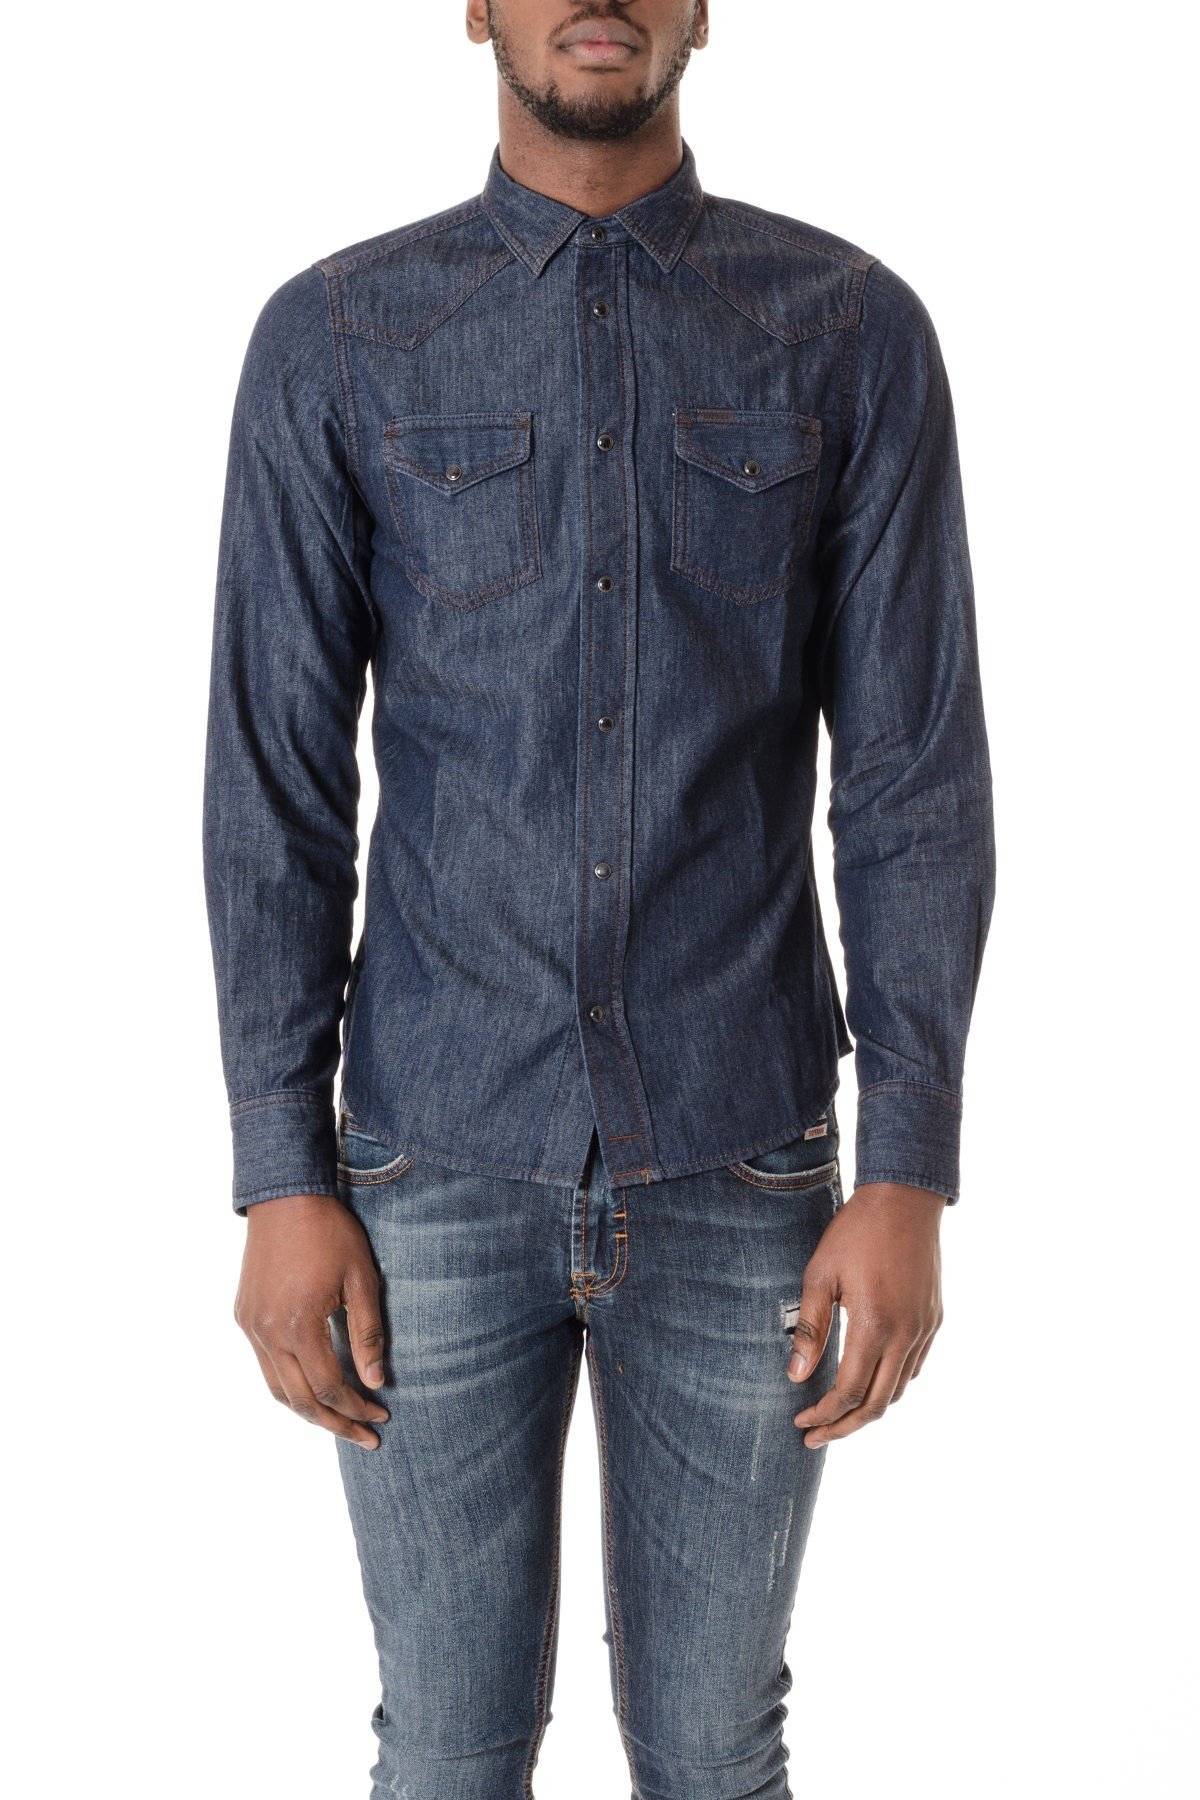 low priced 3e18e 5df9f Camicia in jeans denim per uomo DIESEL P/E